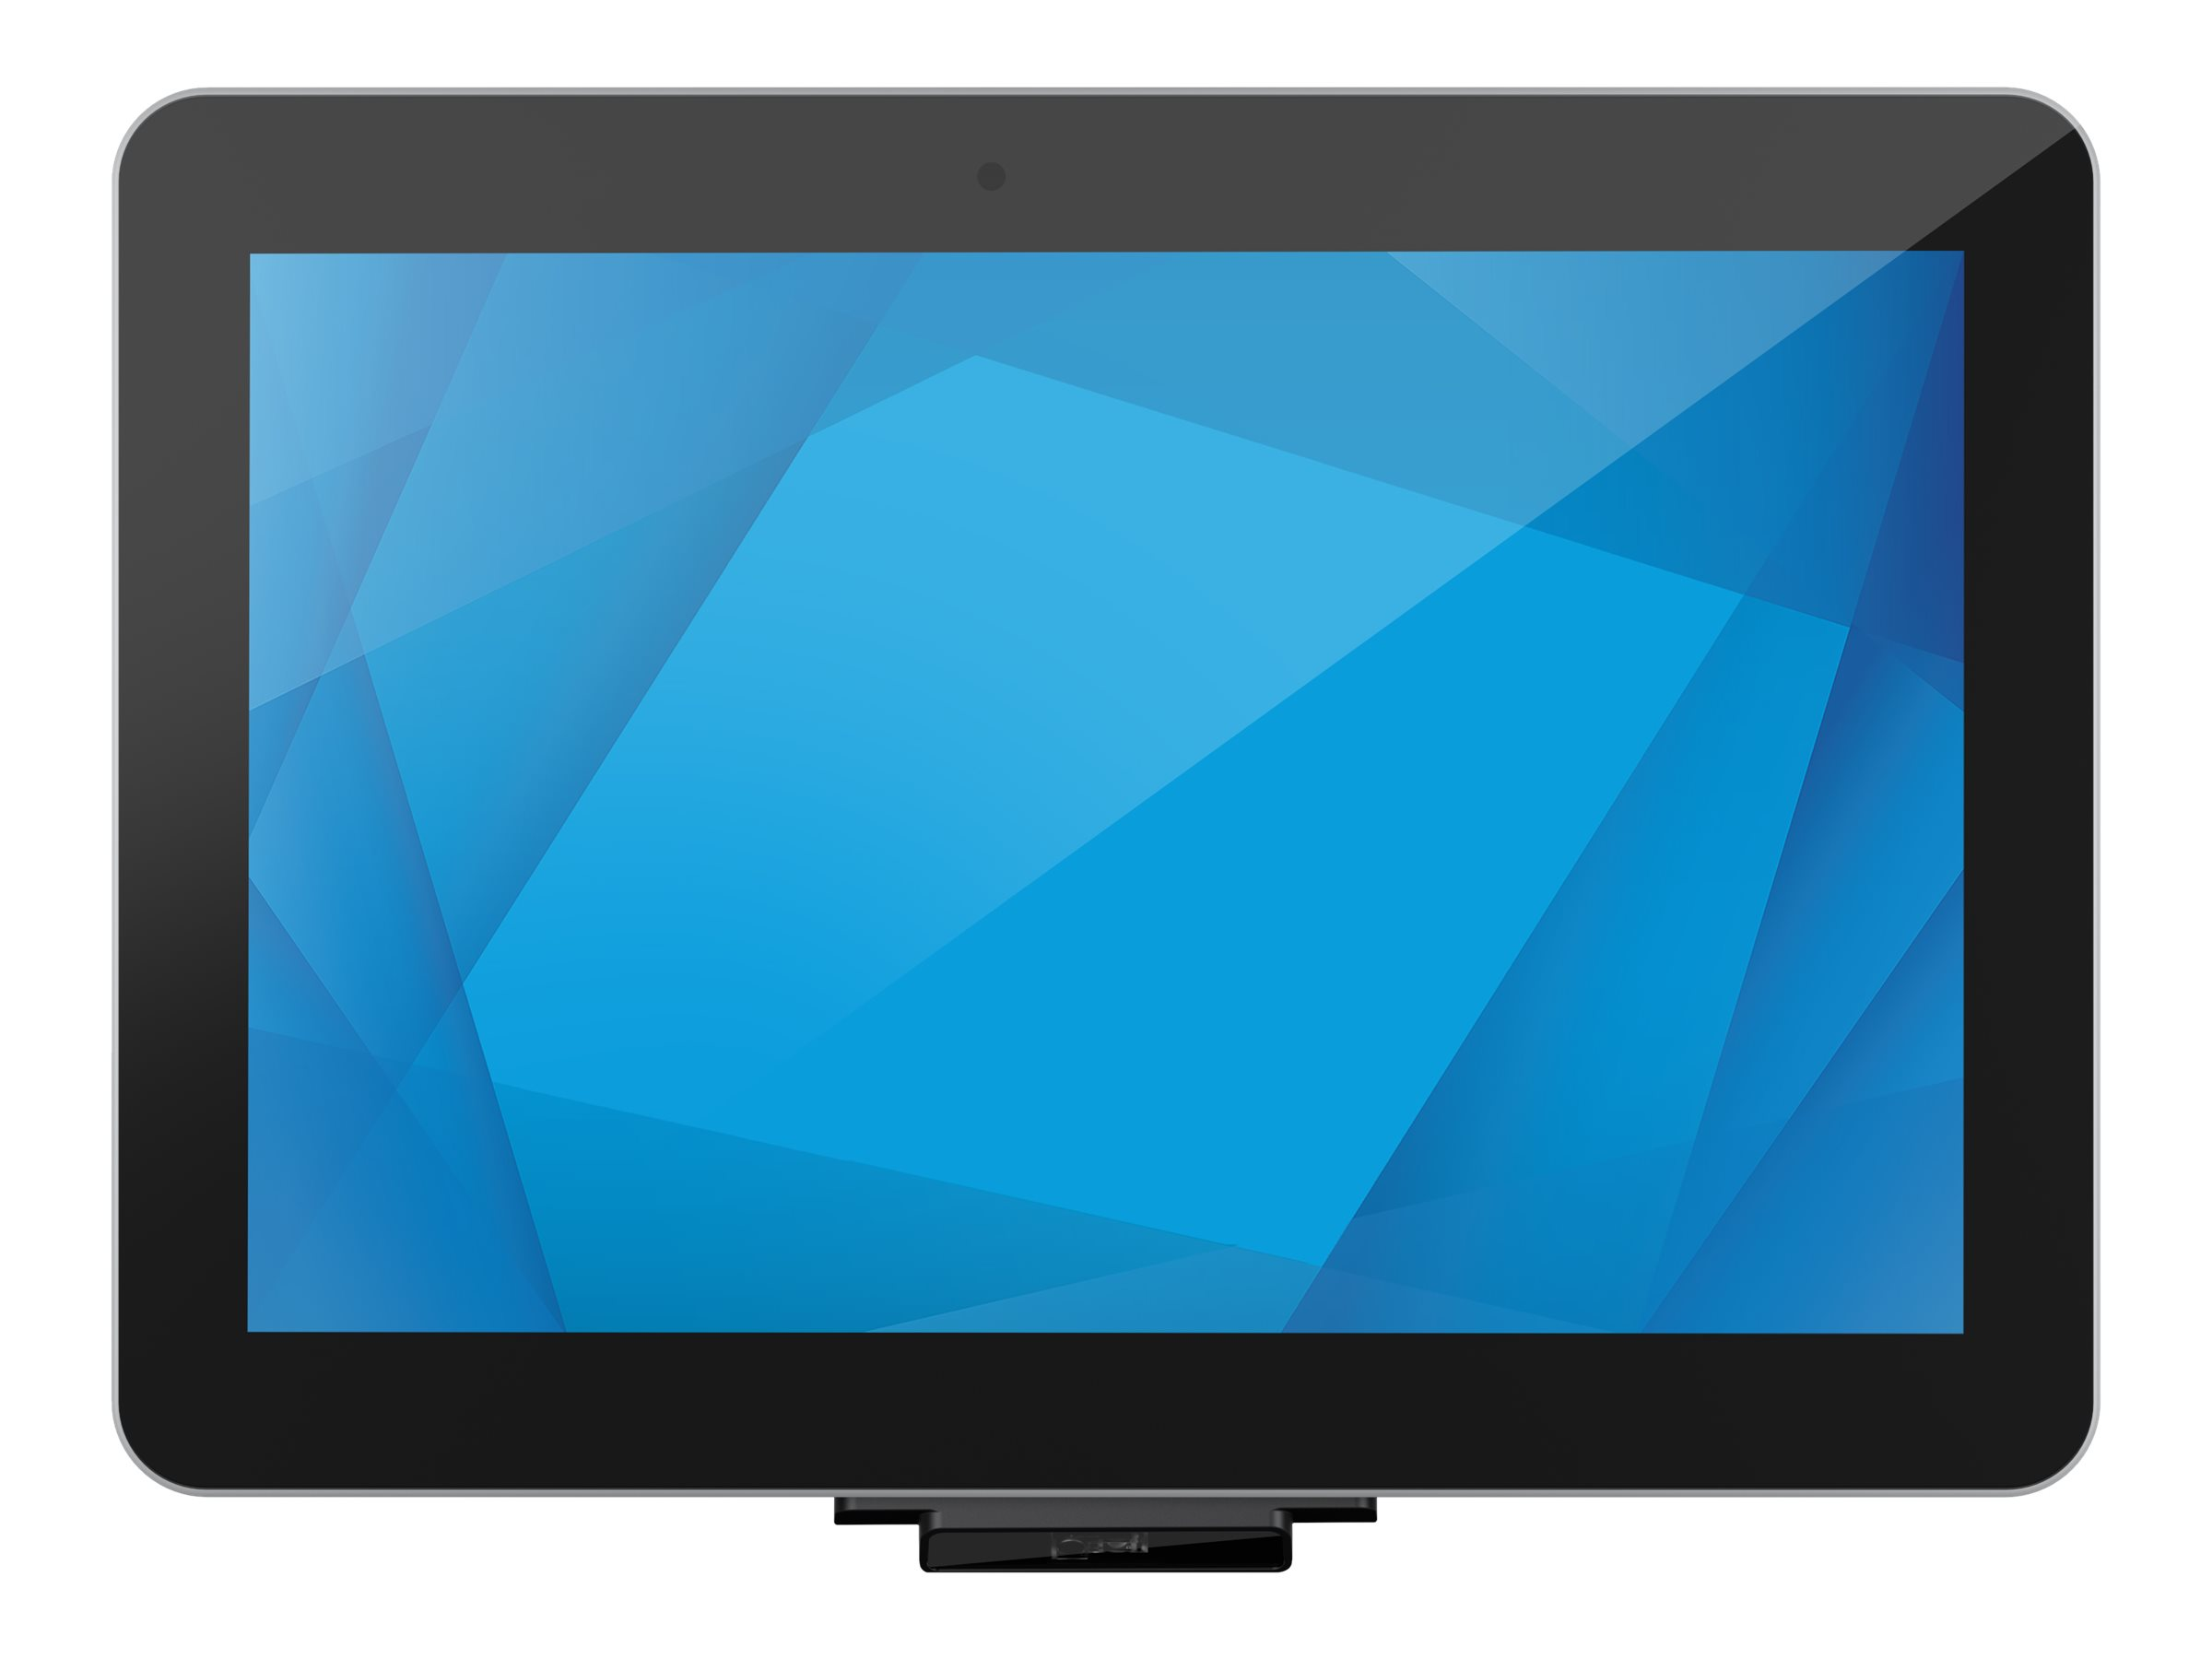 Elo I-Series 3.0 - all-in-one - Snapdragon APQ8053 1.8 GHz - 3 GB - SSD 32 GB - LED 10.1